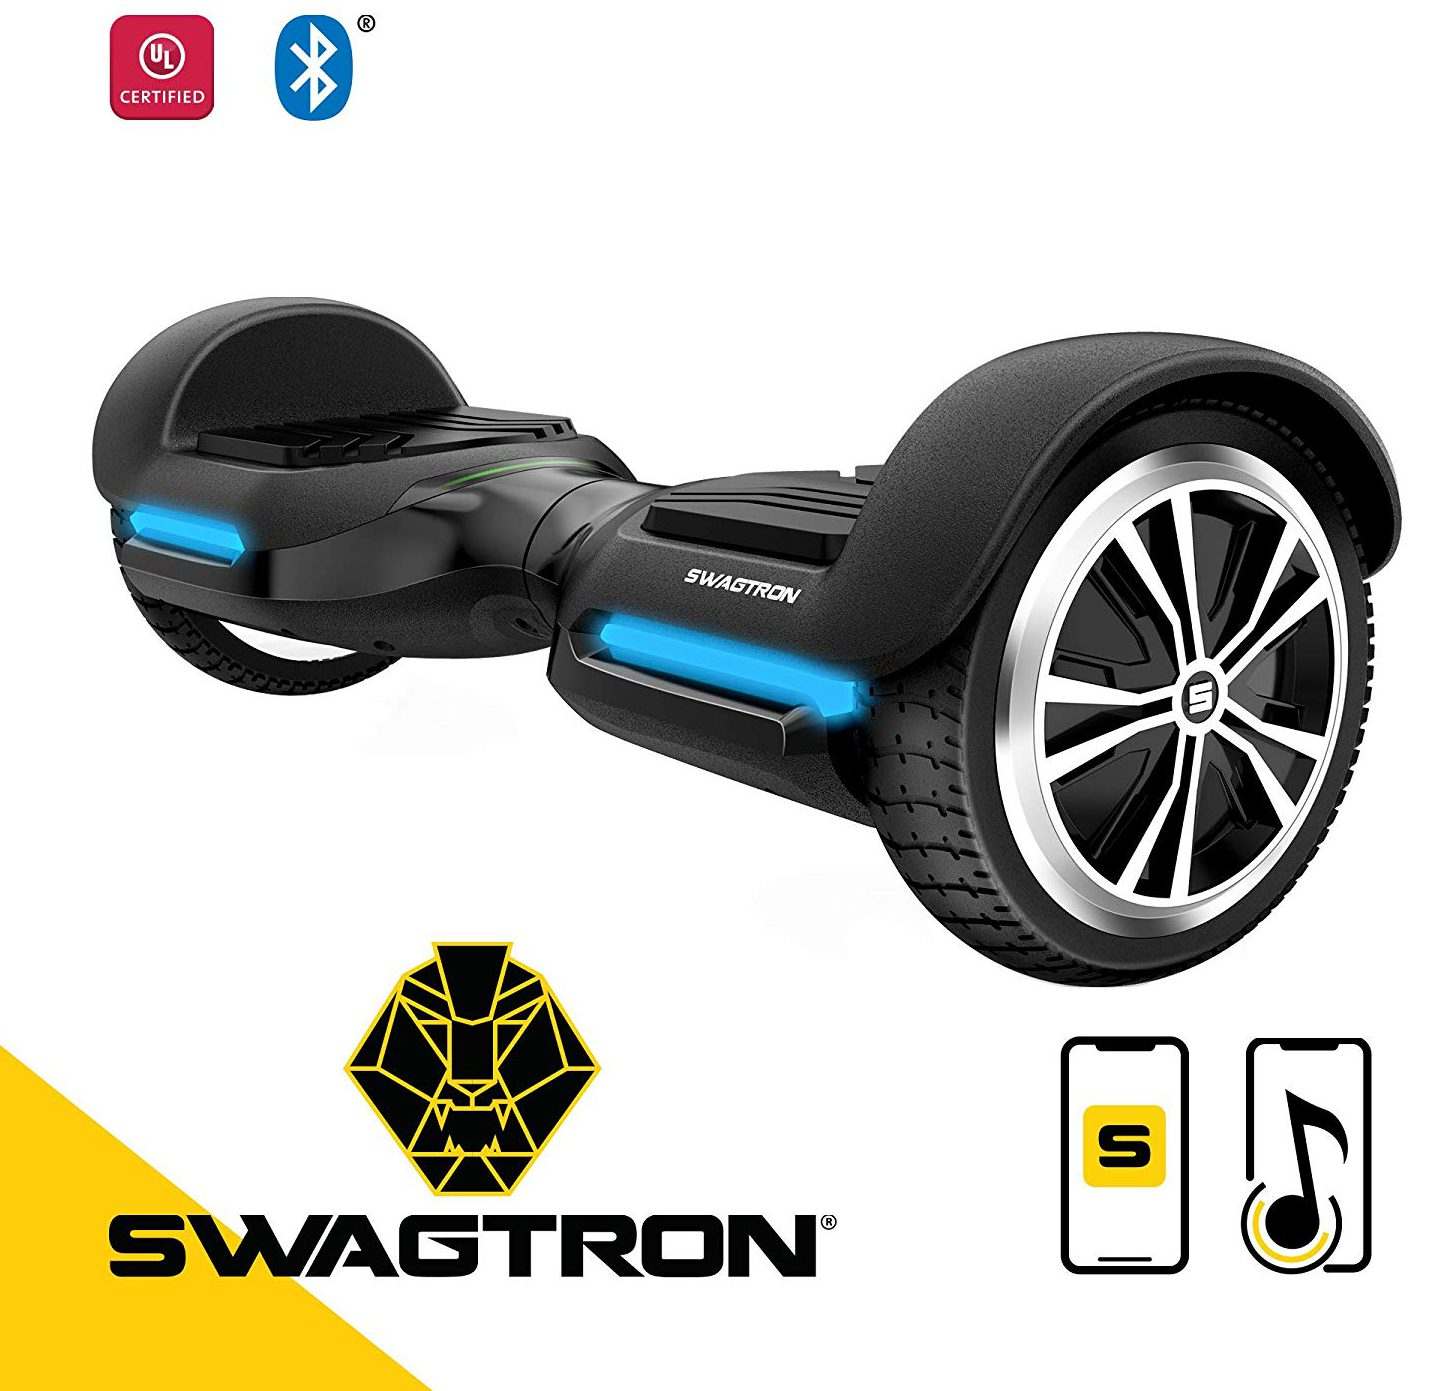 Swagtron App Enabled Bluetooth Hoverboard